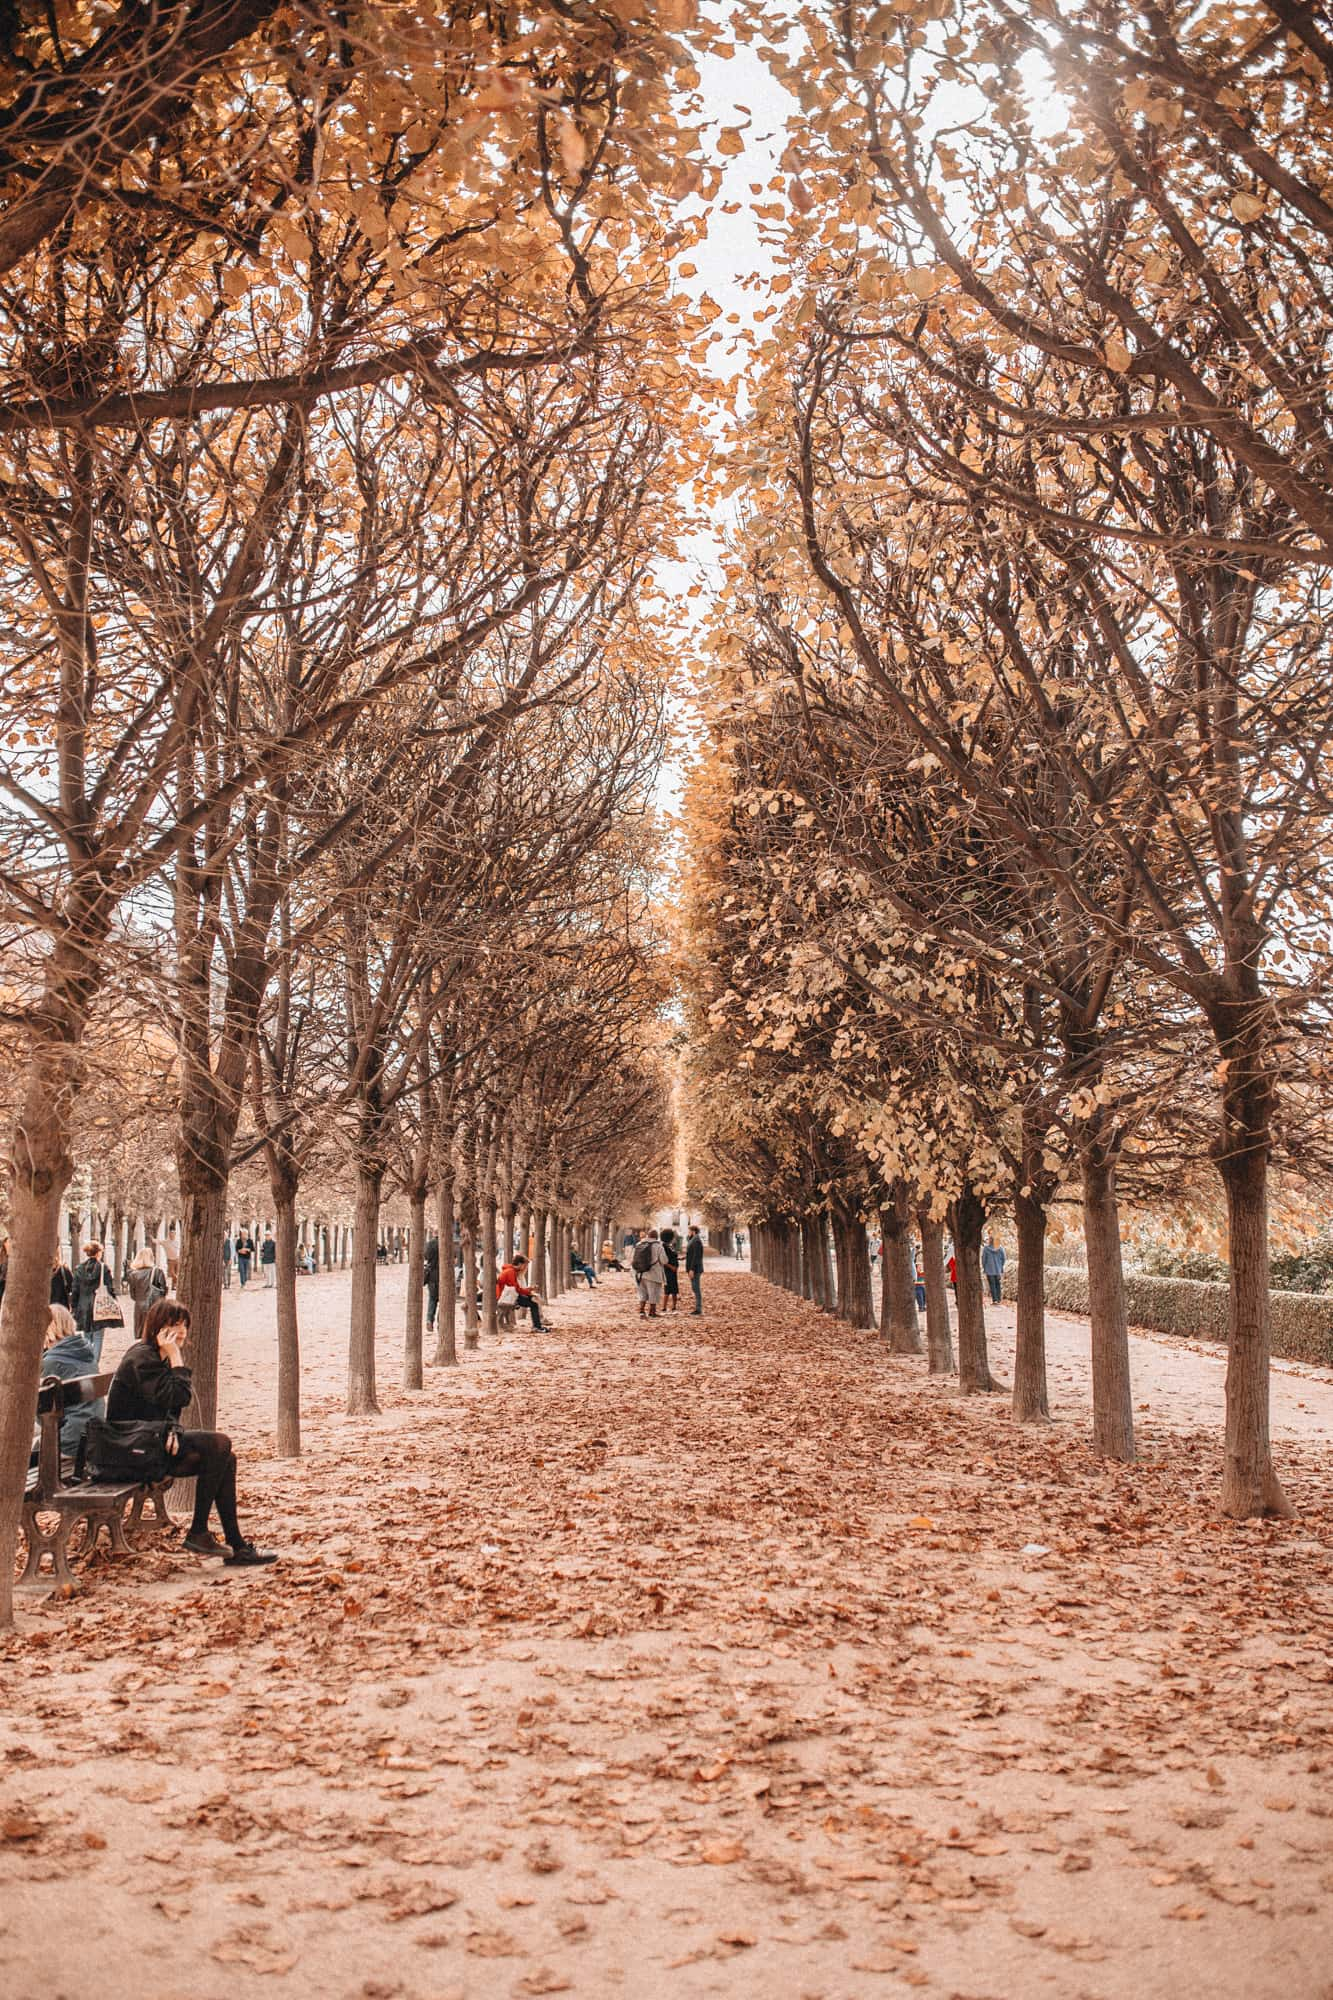 Palais Royal gardens under fall trees